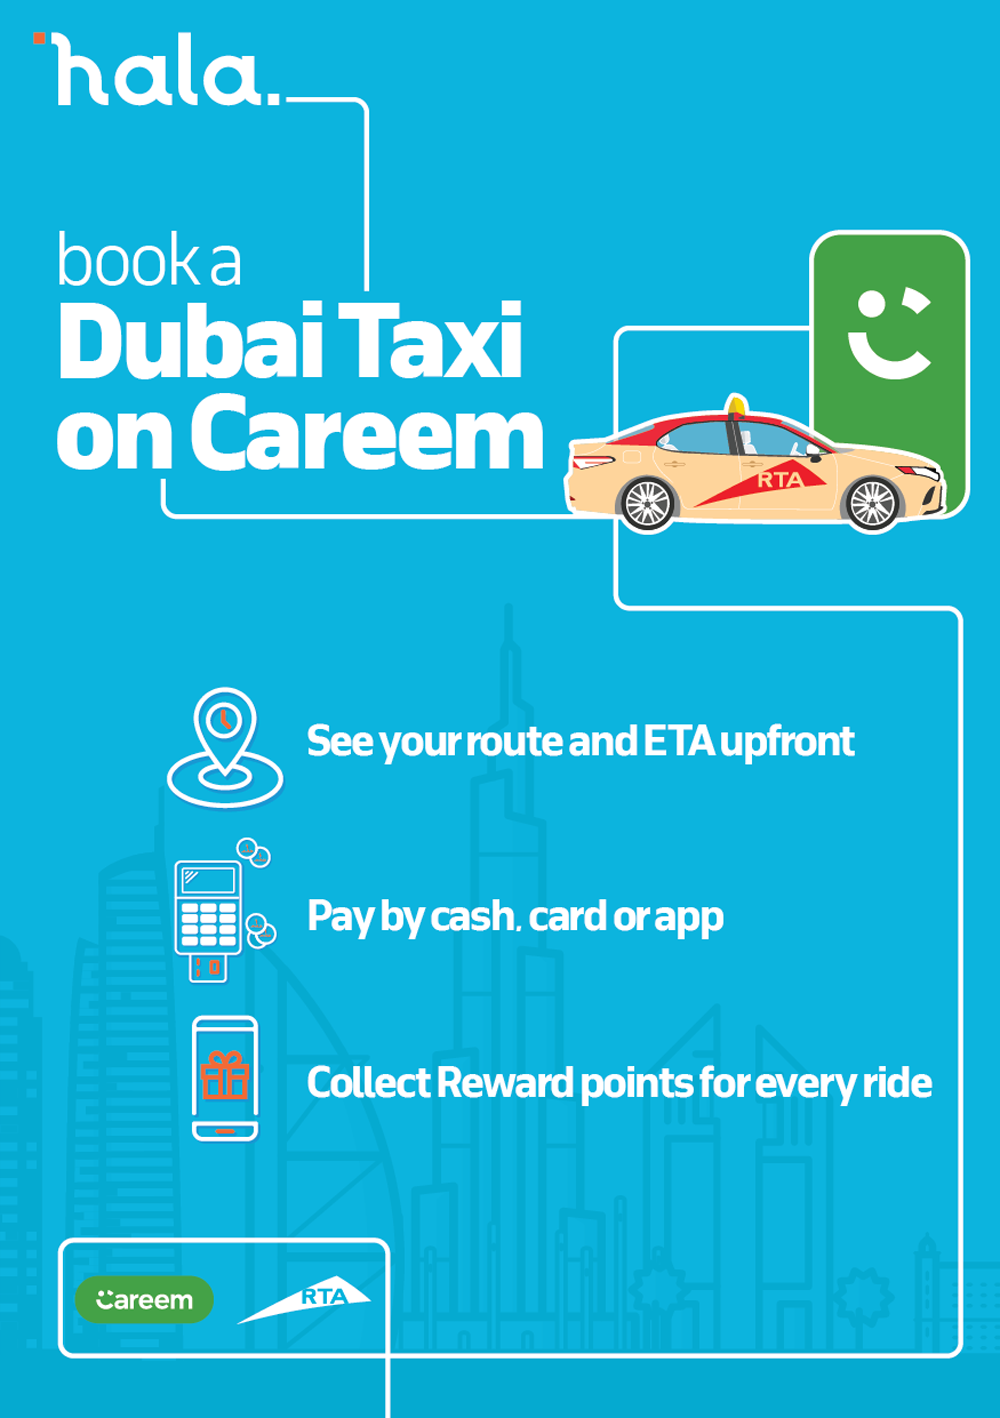 Complete migration of RTA taxi bookings services to Hala comes into effect on 15 January